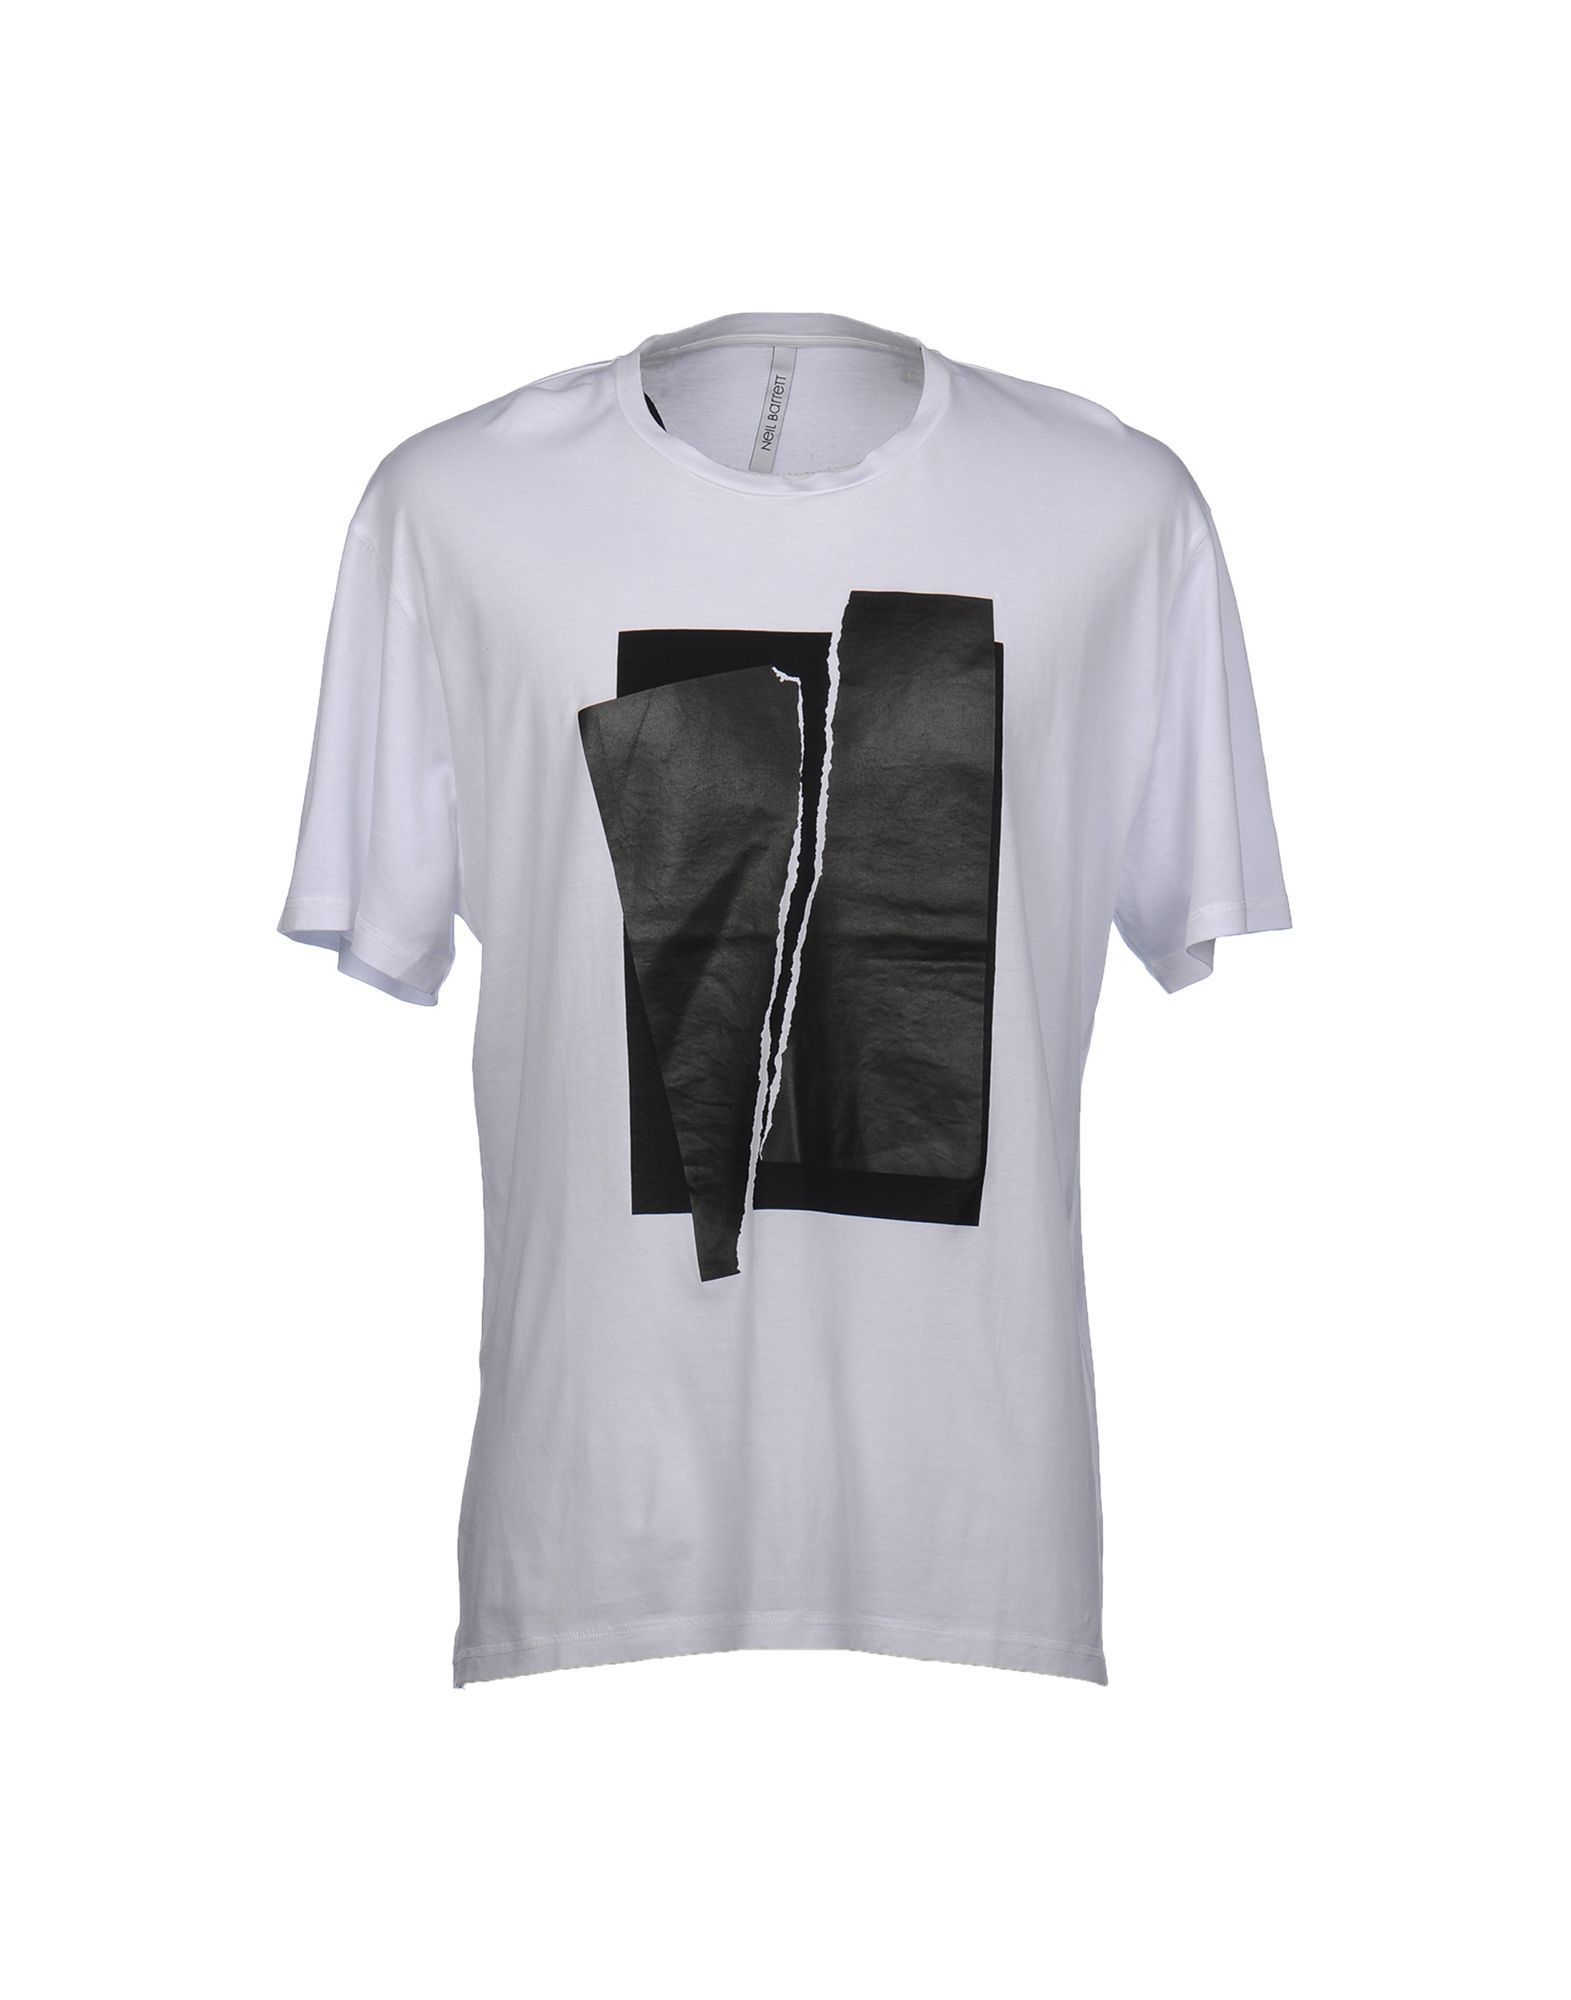 9075a837fc1f Neil barrett Men - Tops   tees - T-shirt Neil barrett on YOOX